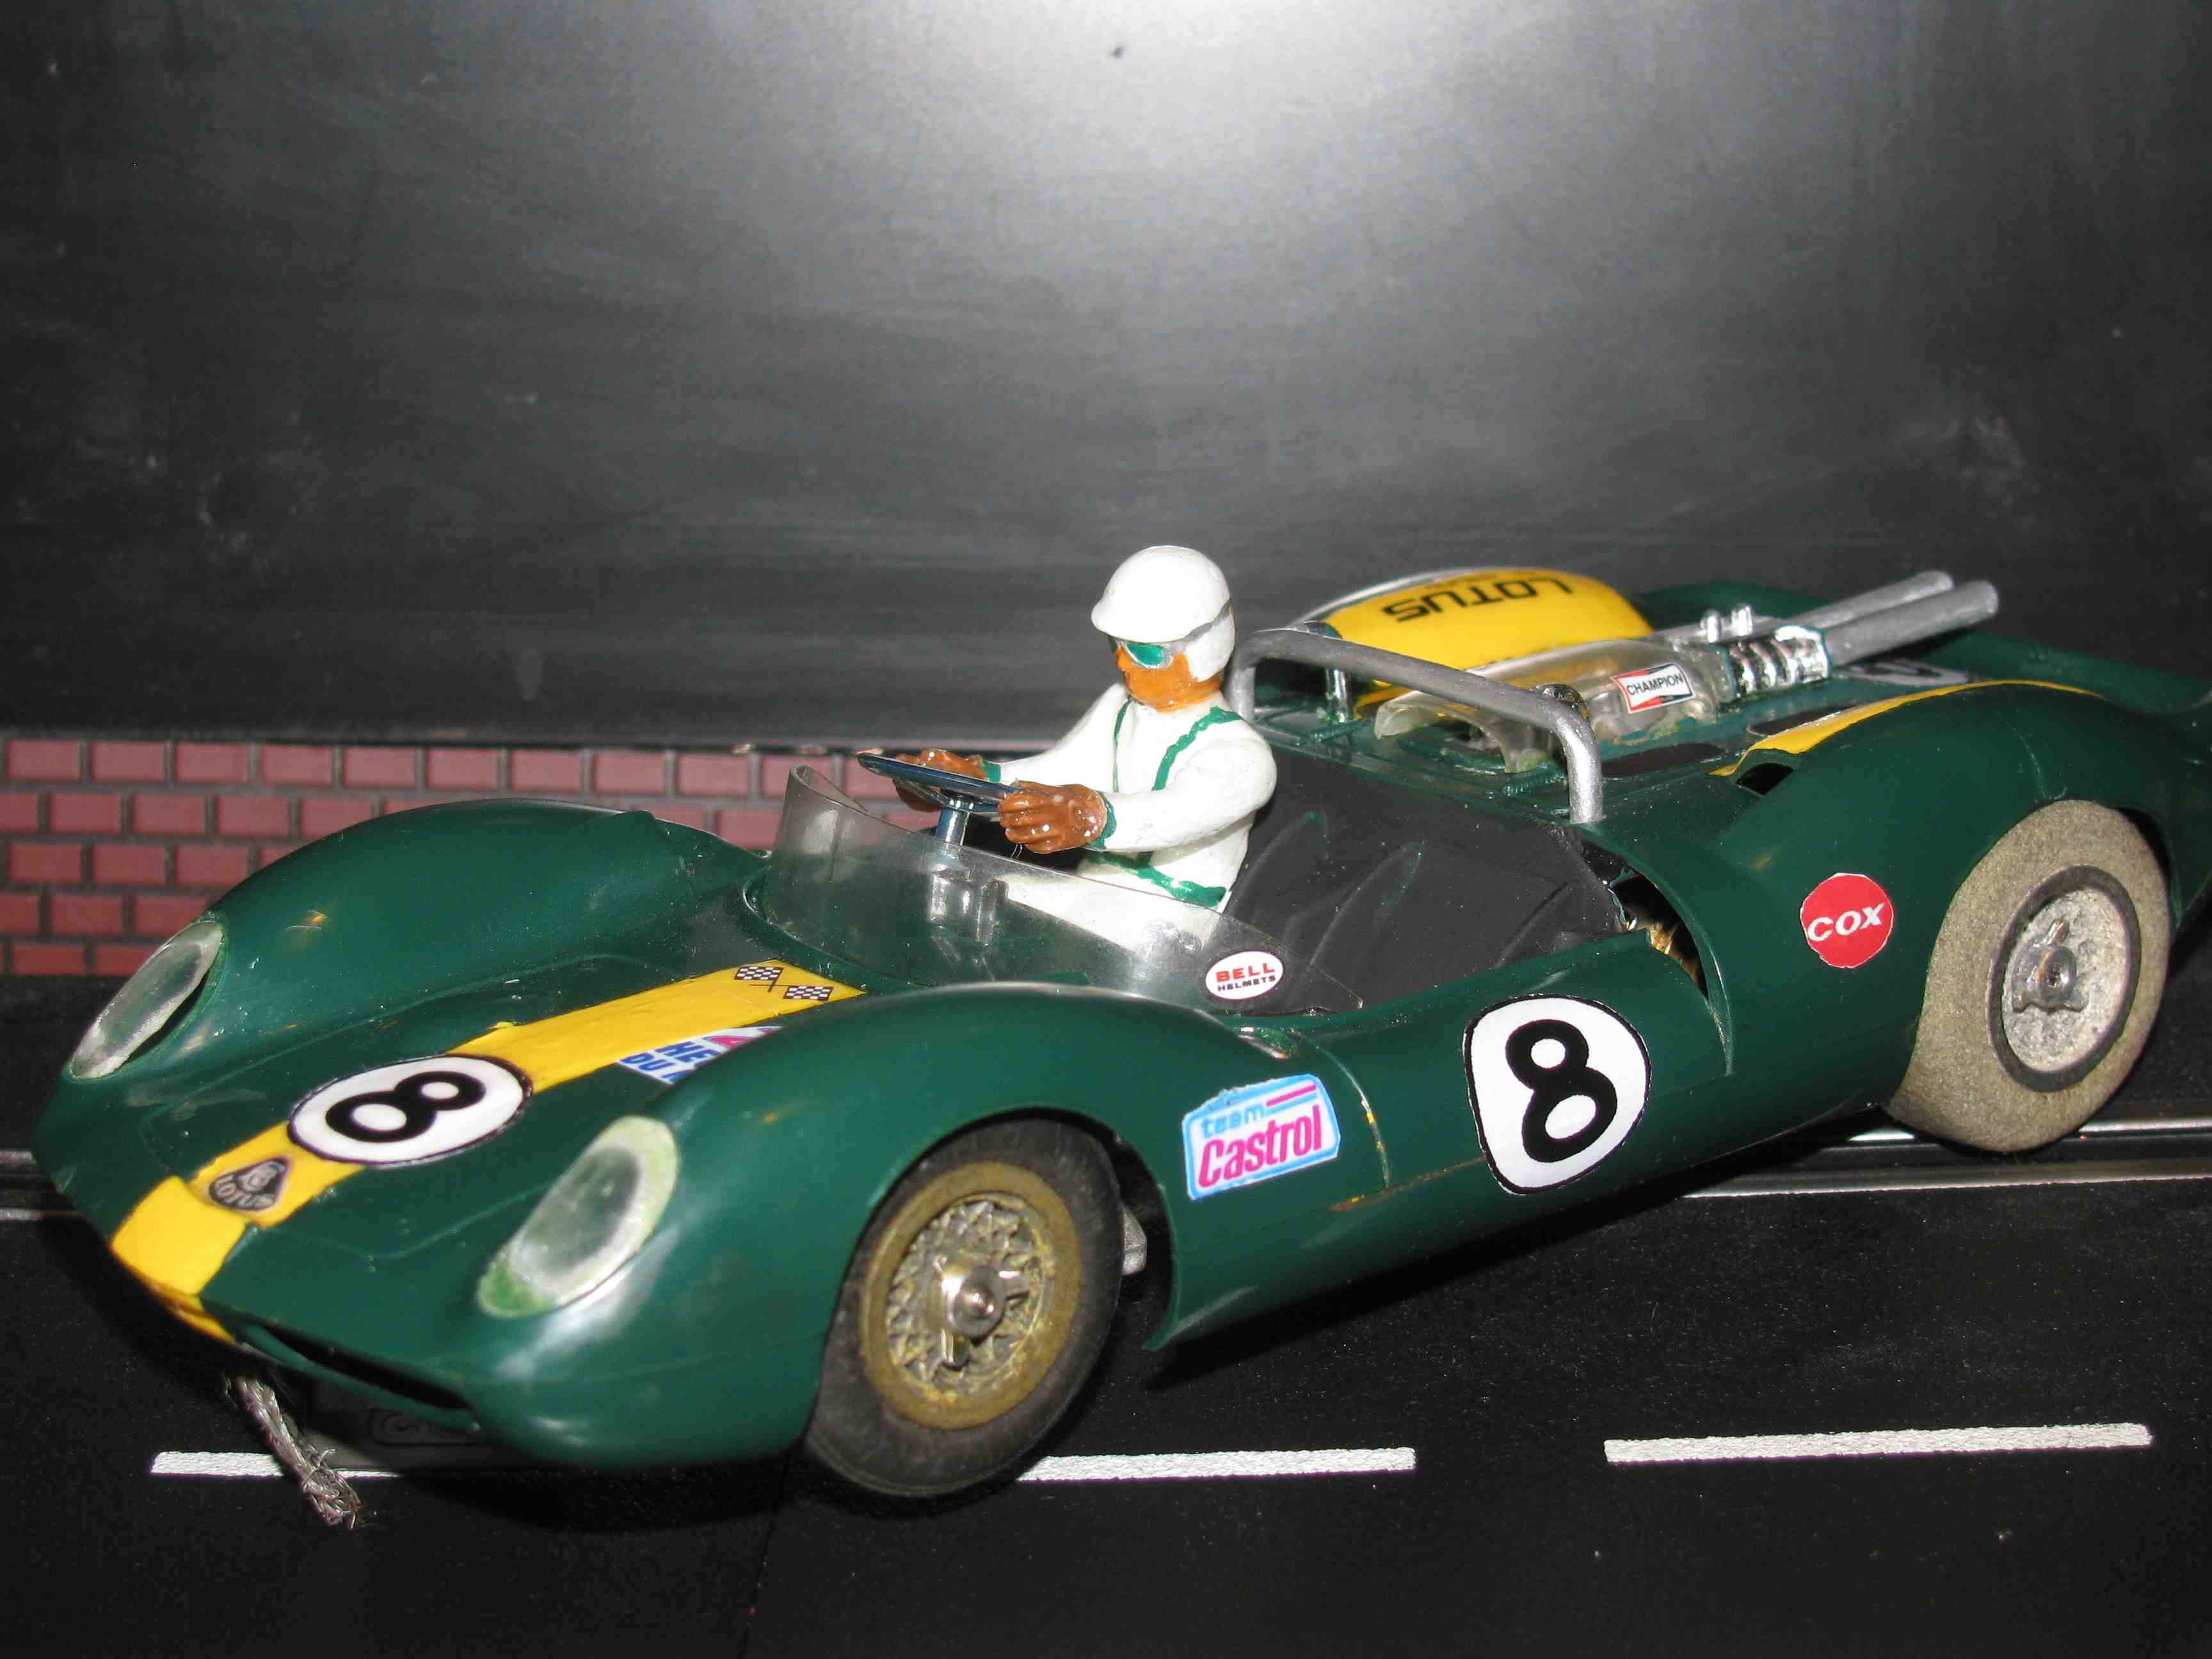 * SOLD * Vintage Lotus 40 Slot Car 1/24 Scale